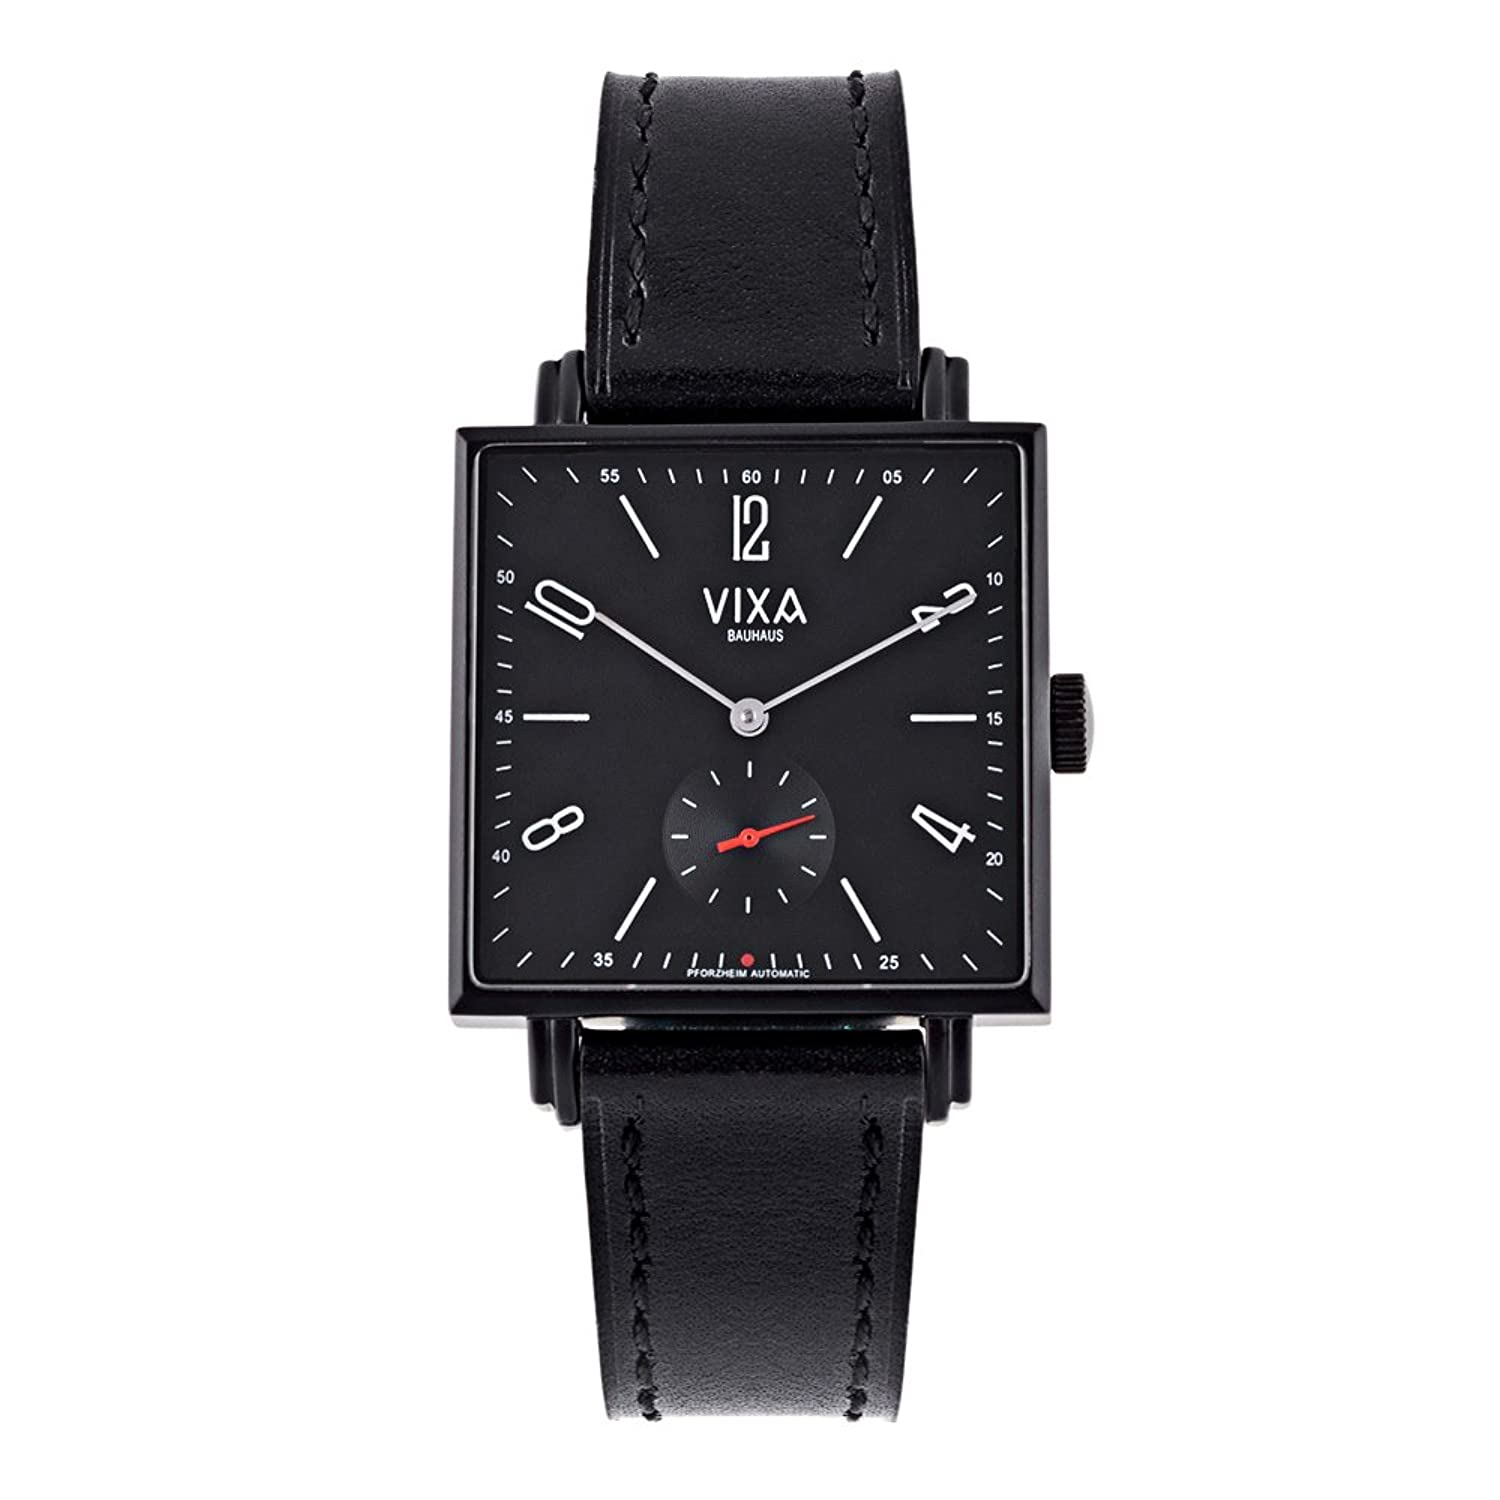 Vixa vomc7013380 Men ' s Watch Classic Square Automatic Mechanical Wrist Watch with Black Dial andレザーバンドシンプル&エレガント。 B07B6J5GTD